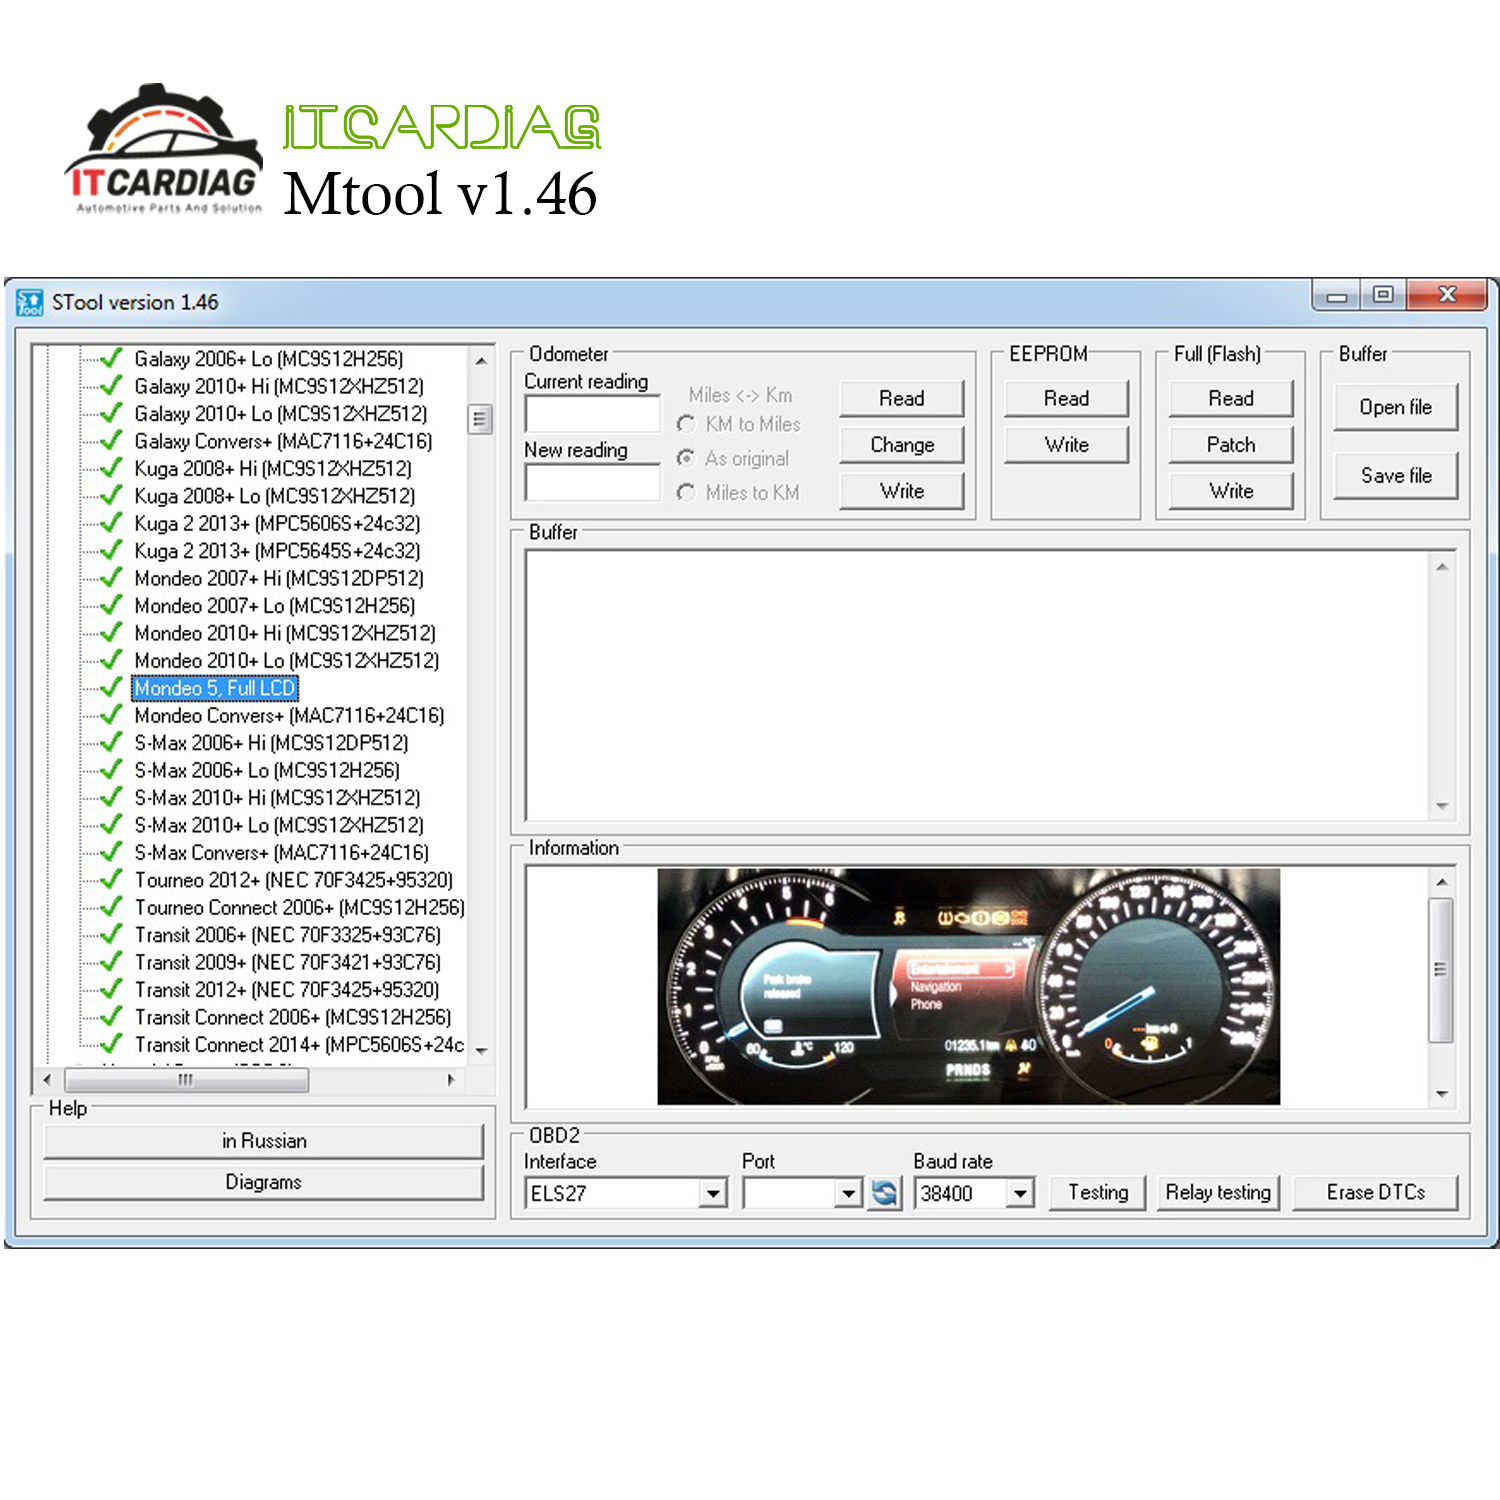 Denso-Adapter Dongle Els27 Odometer-Correction Software Cars Mtool Wires-Cable Full-Set title=